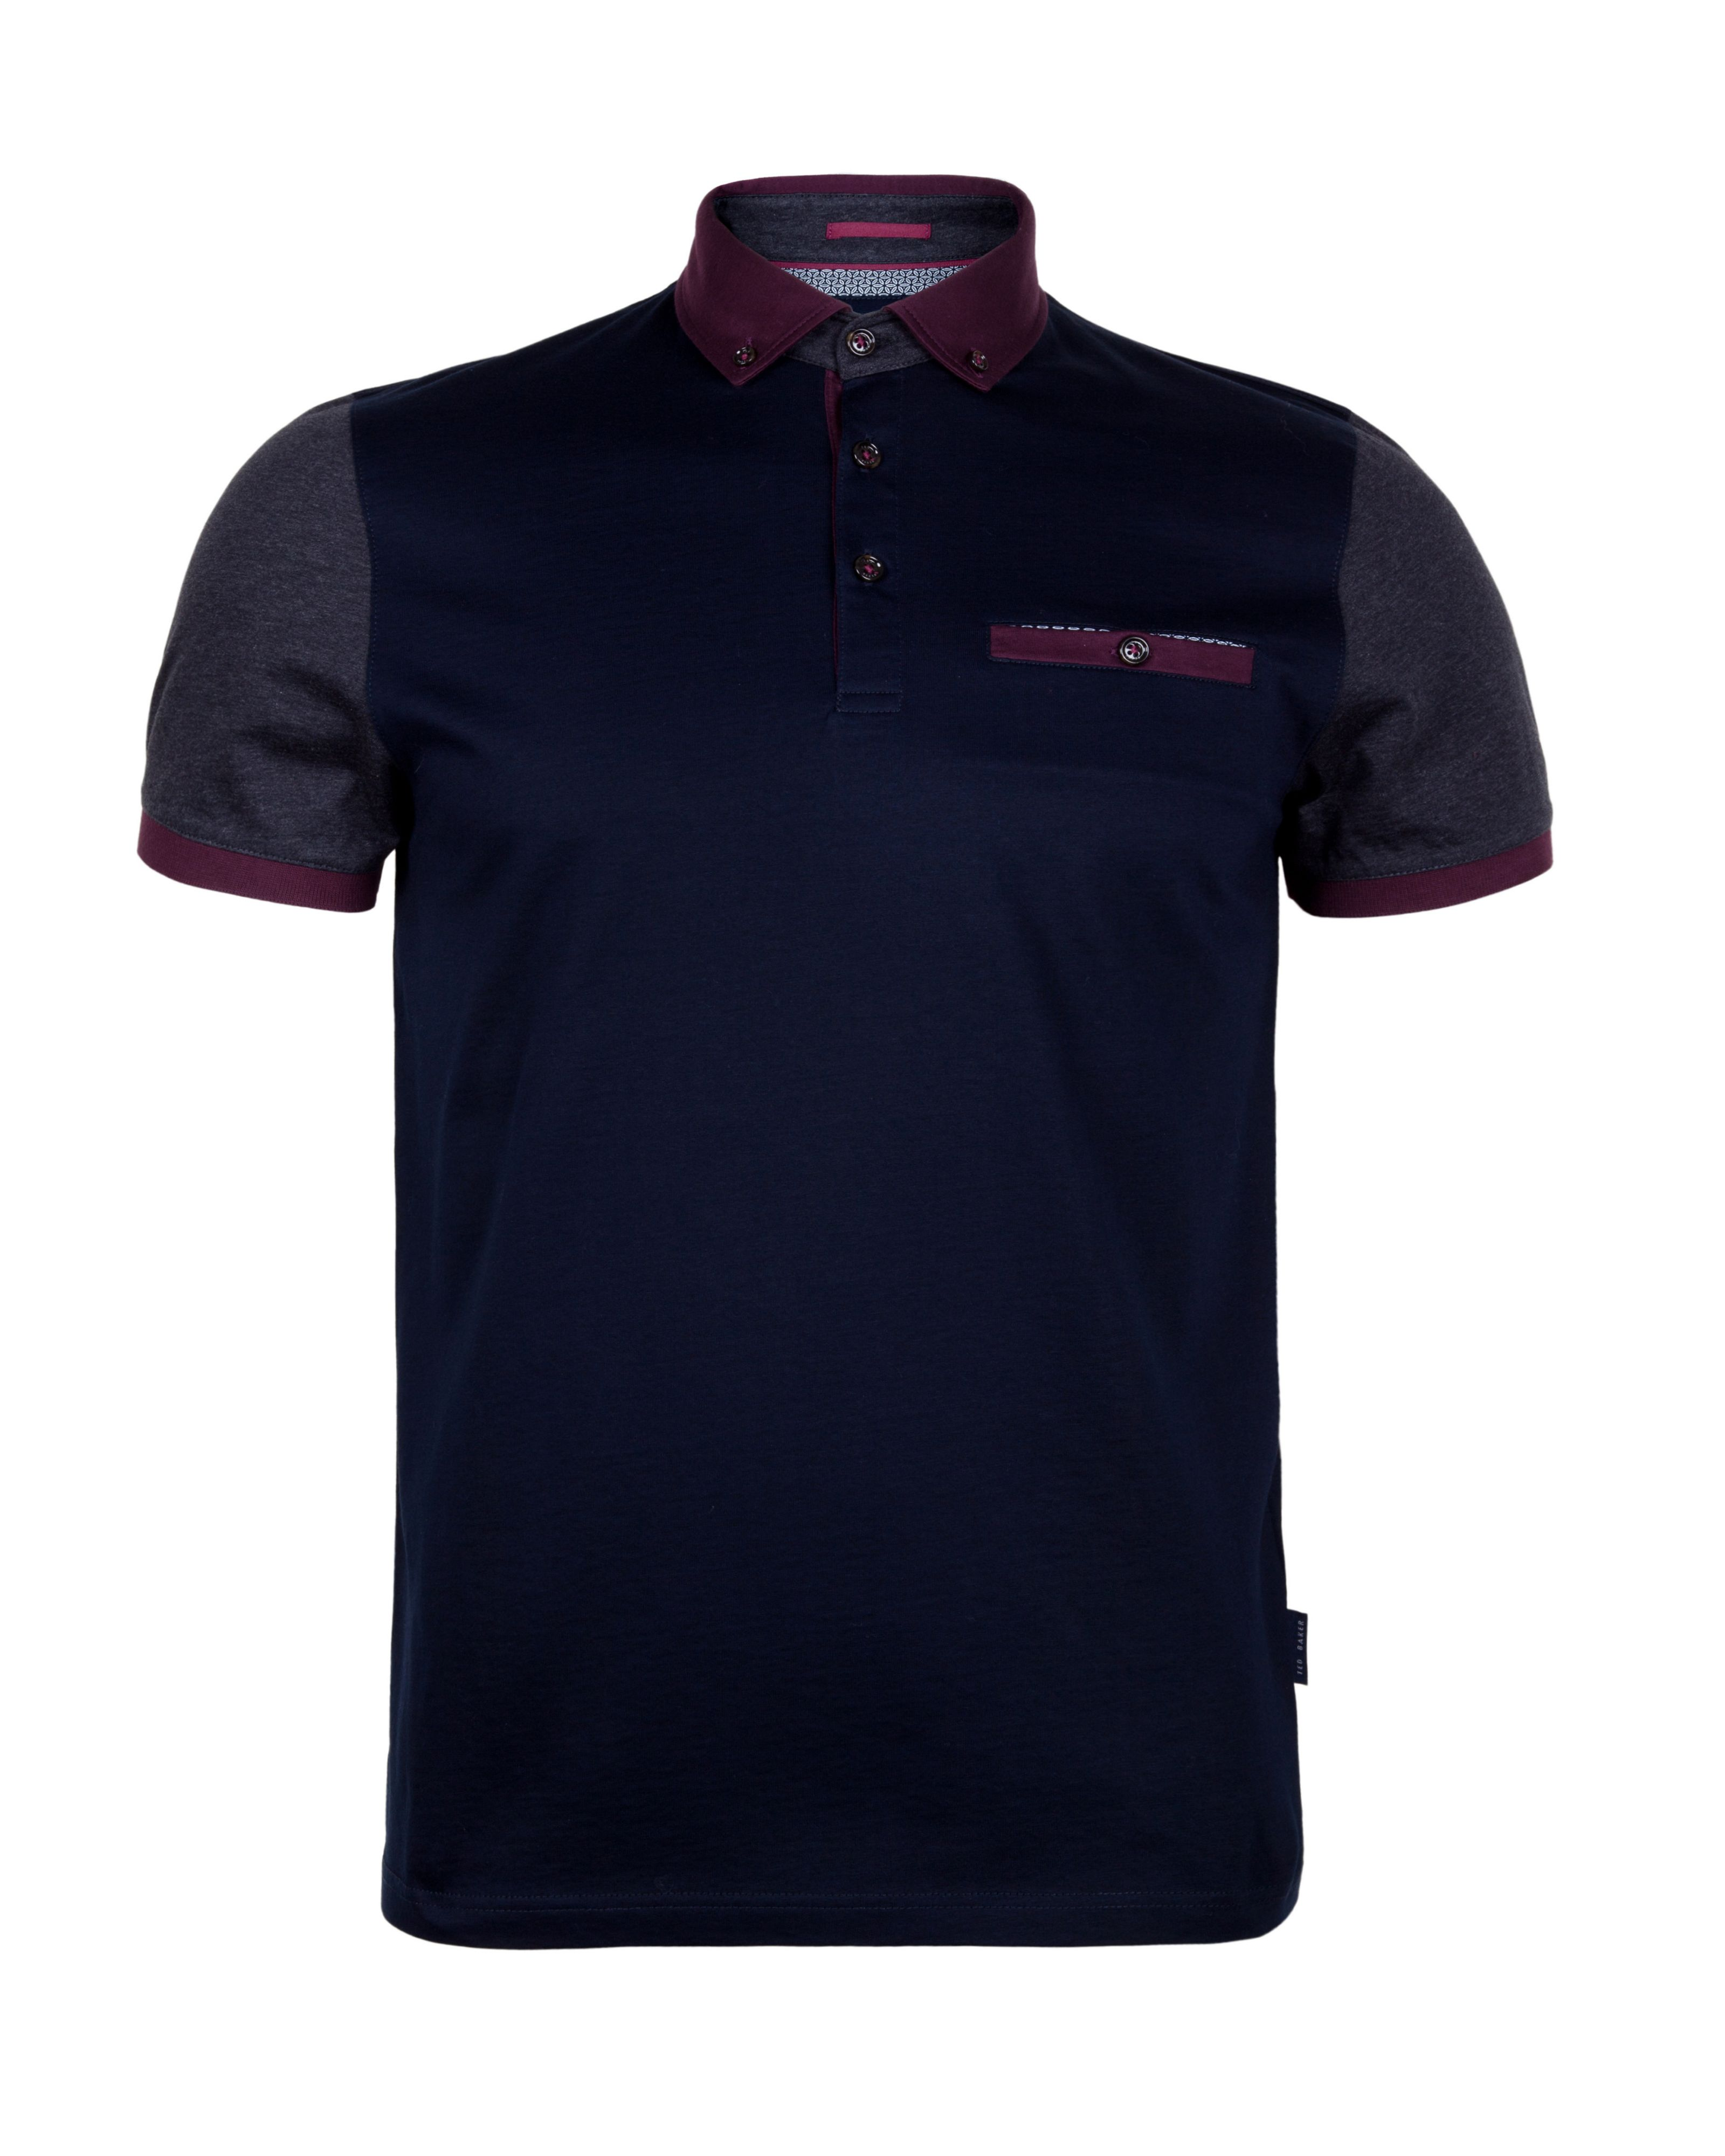 Pinkman block colour polo shirt